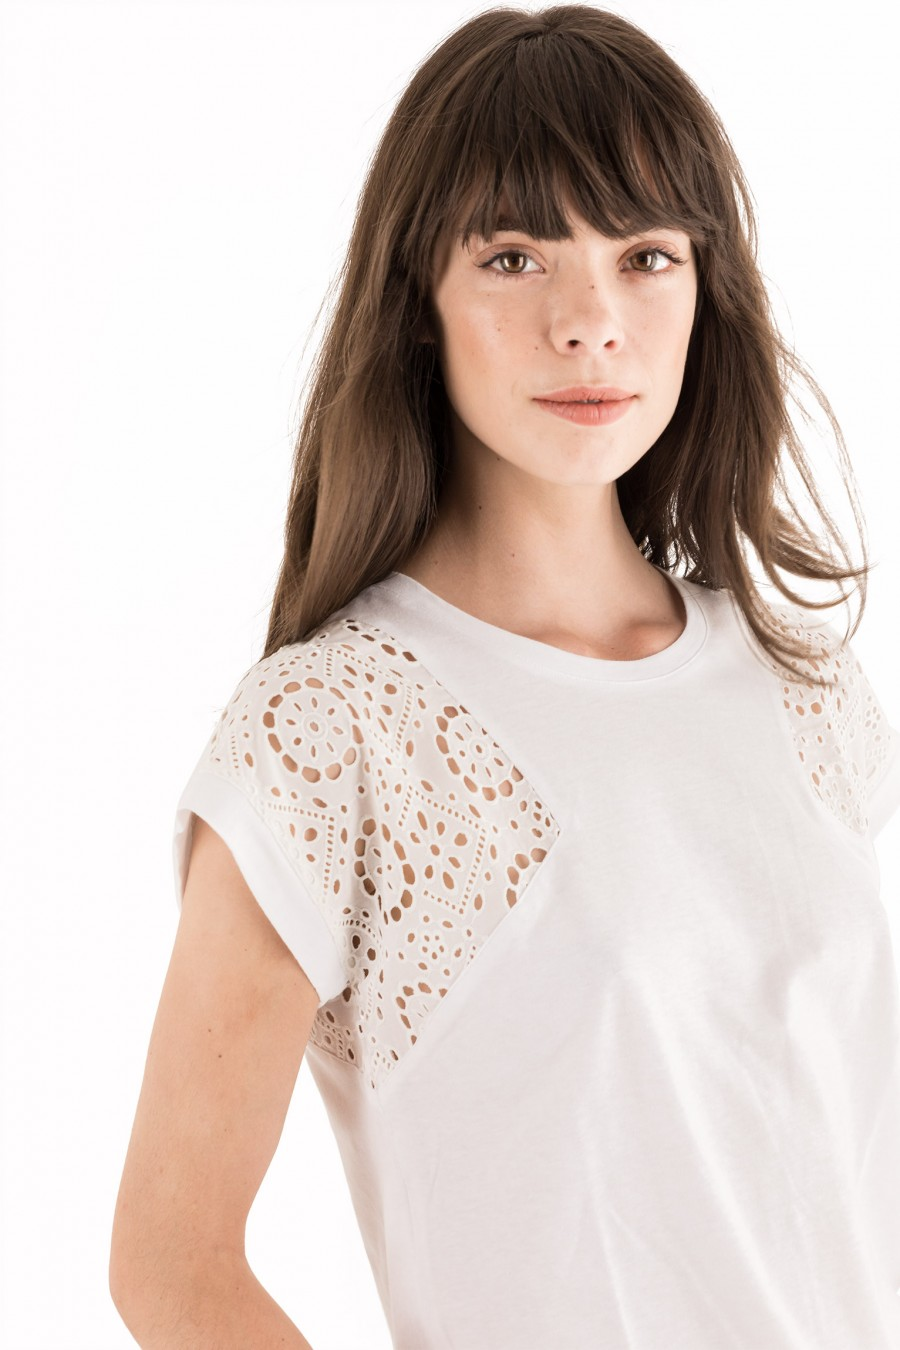 White t-shirt with Broderie anglaise insert